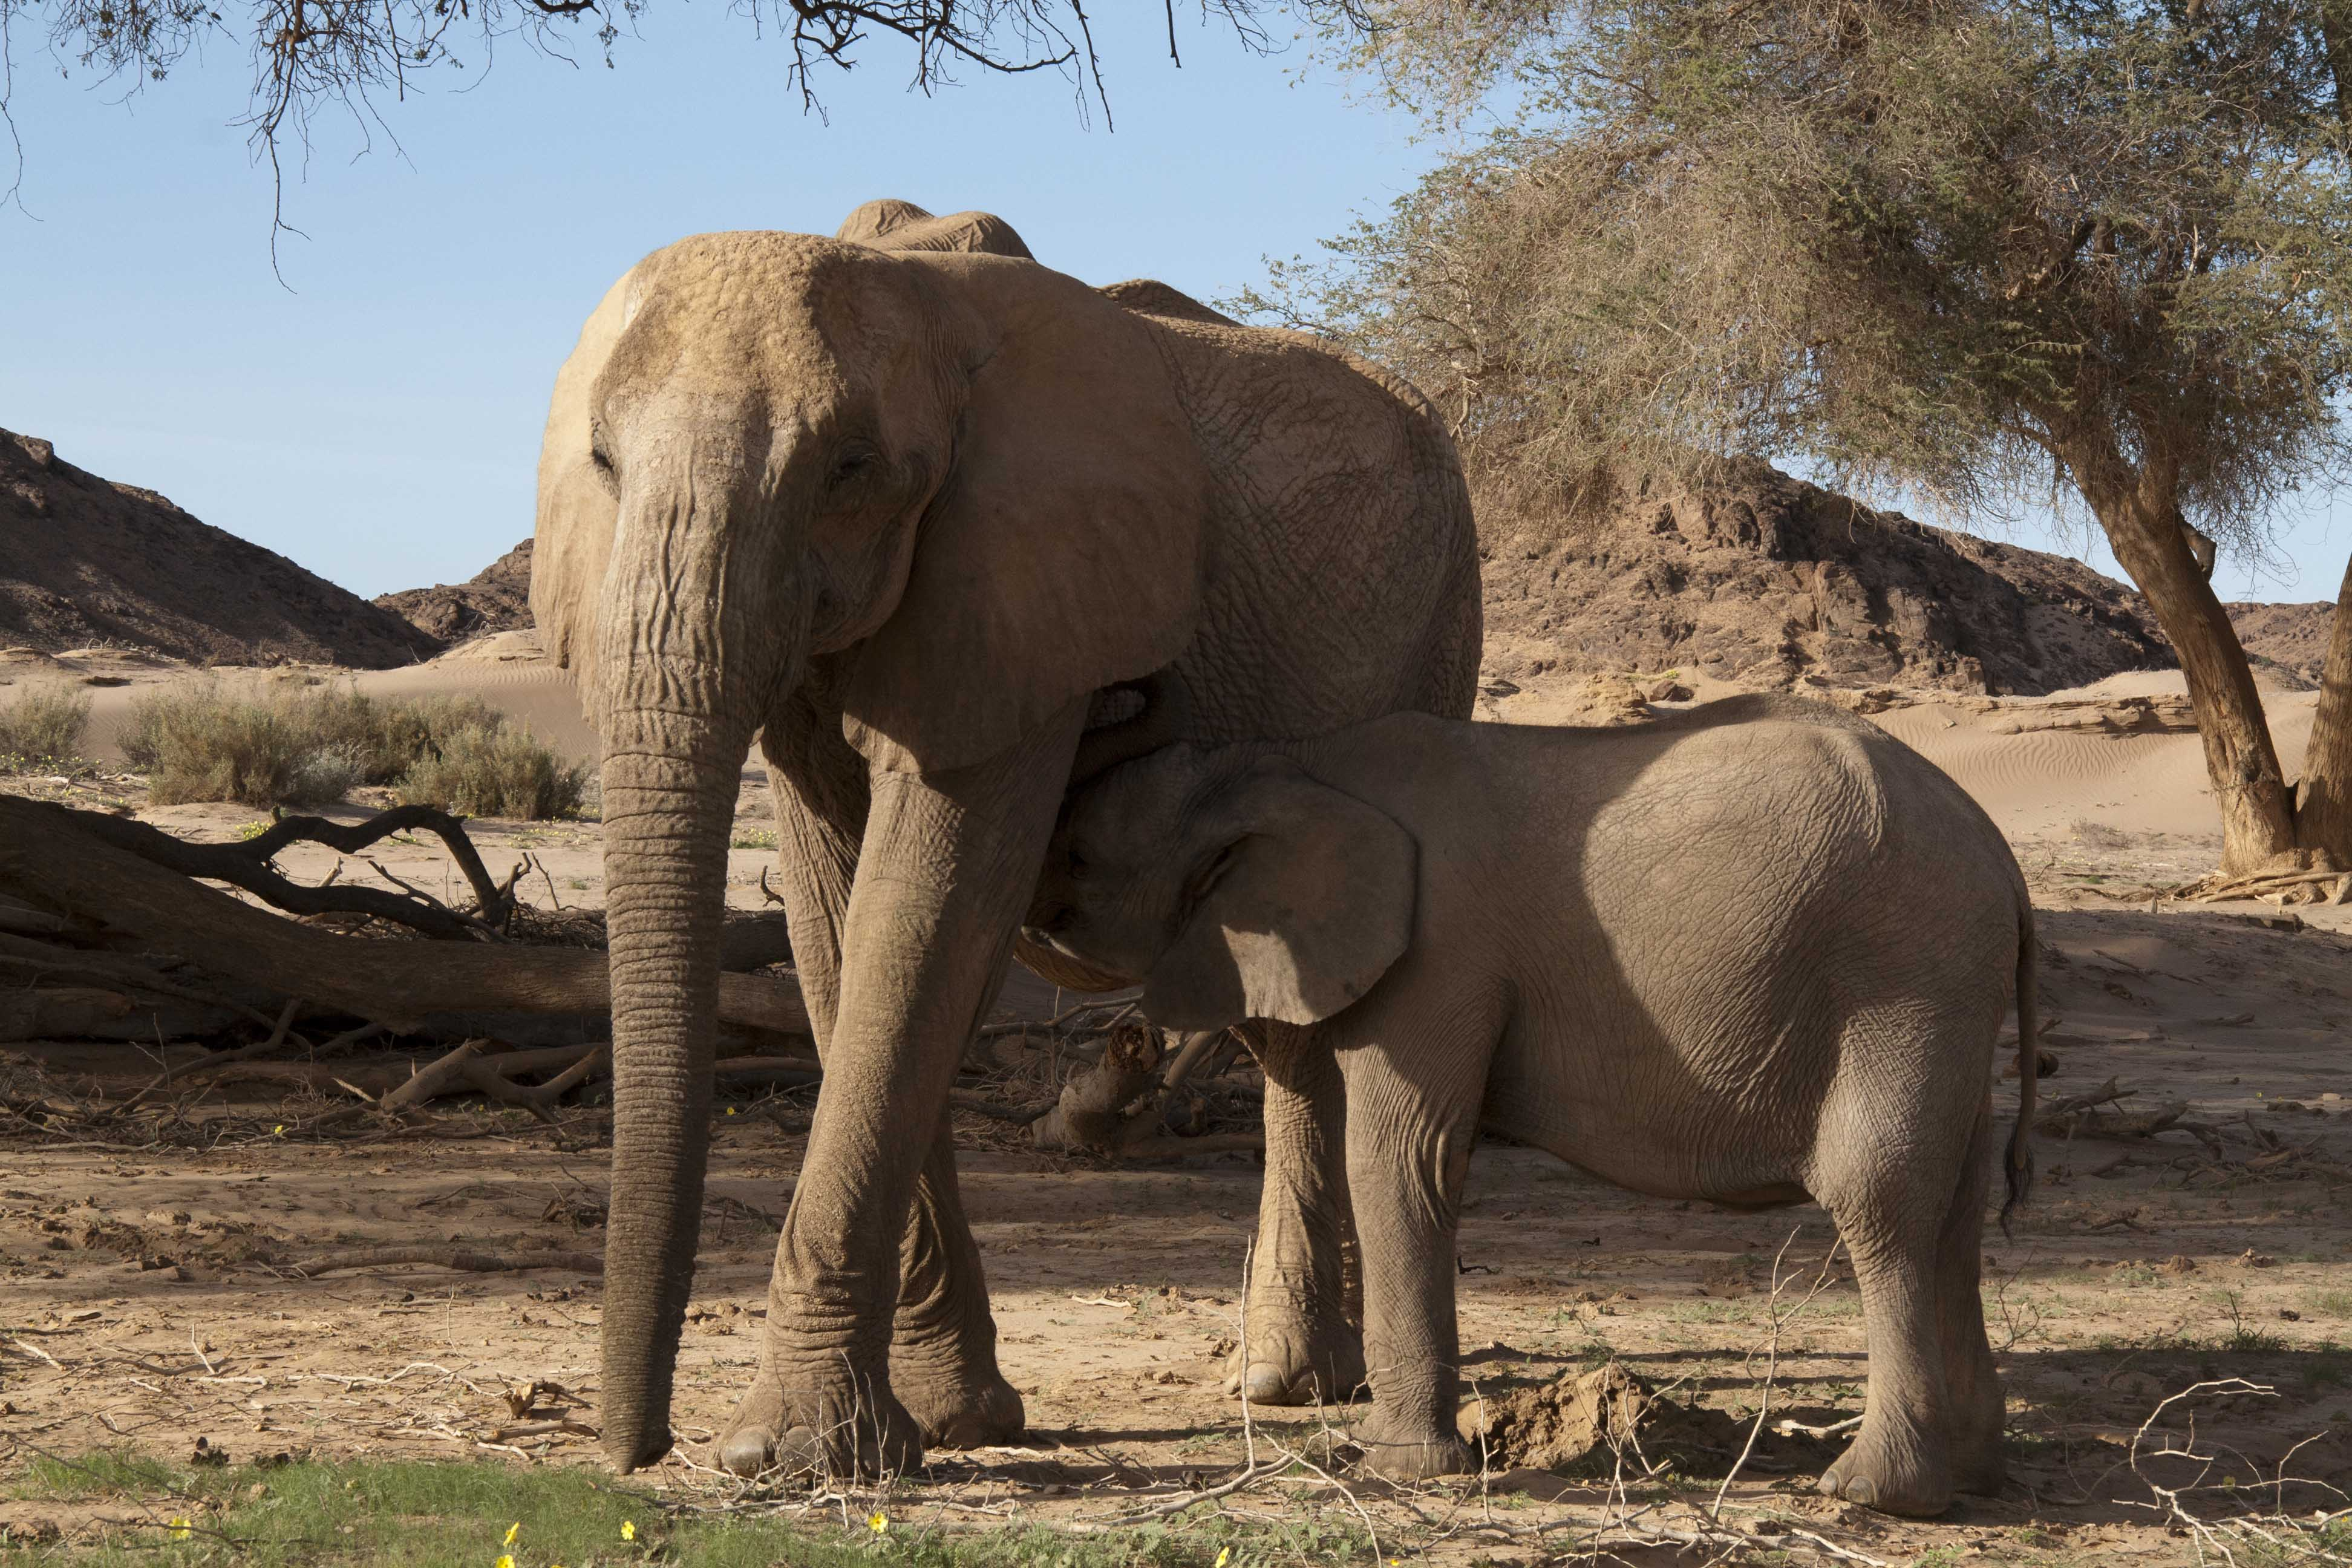 Desert Elephant and calf, Hoanib River, Namibia